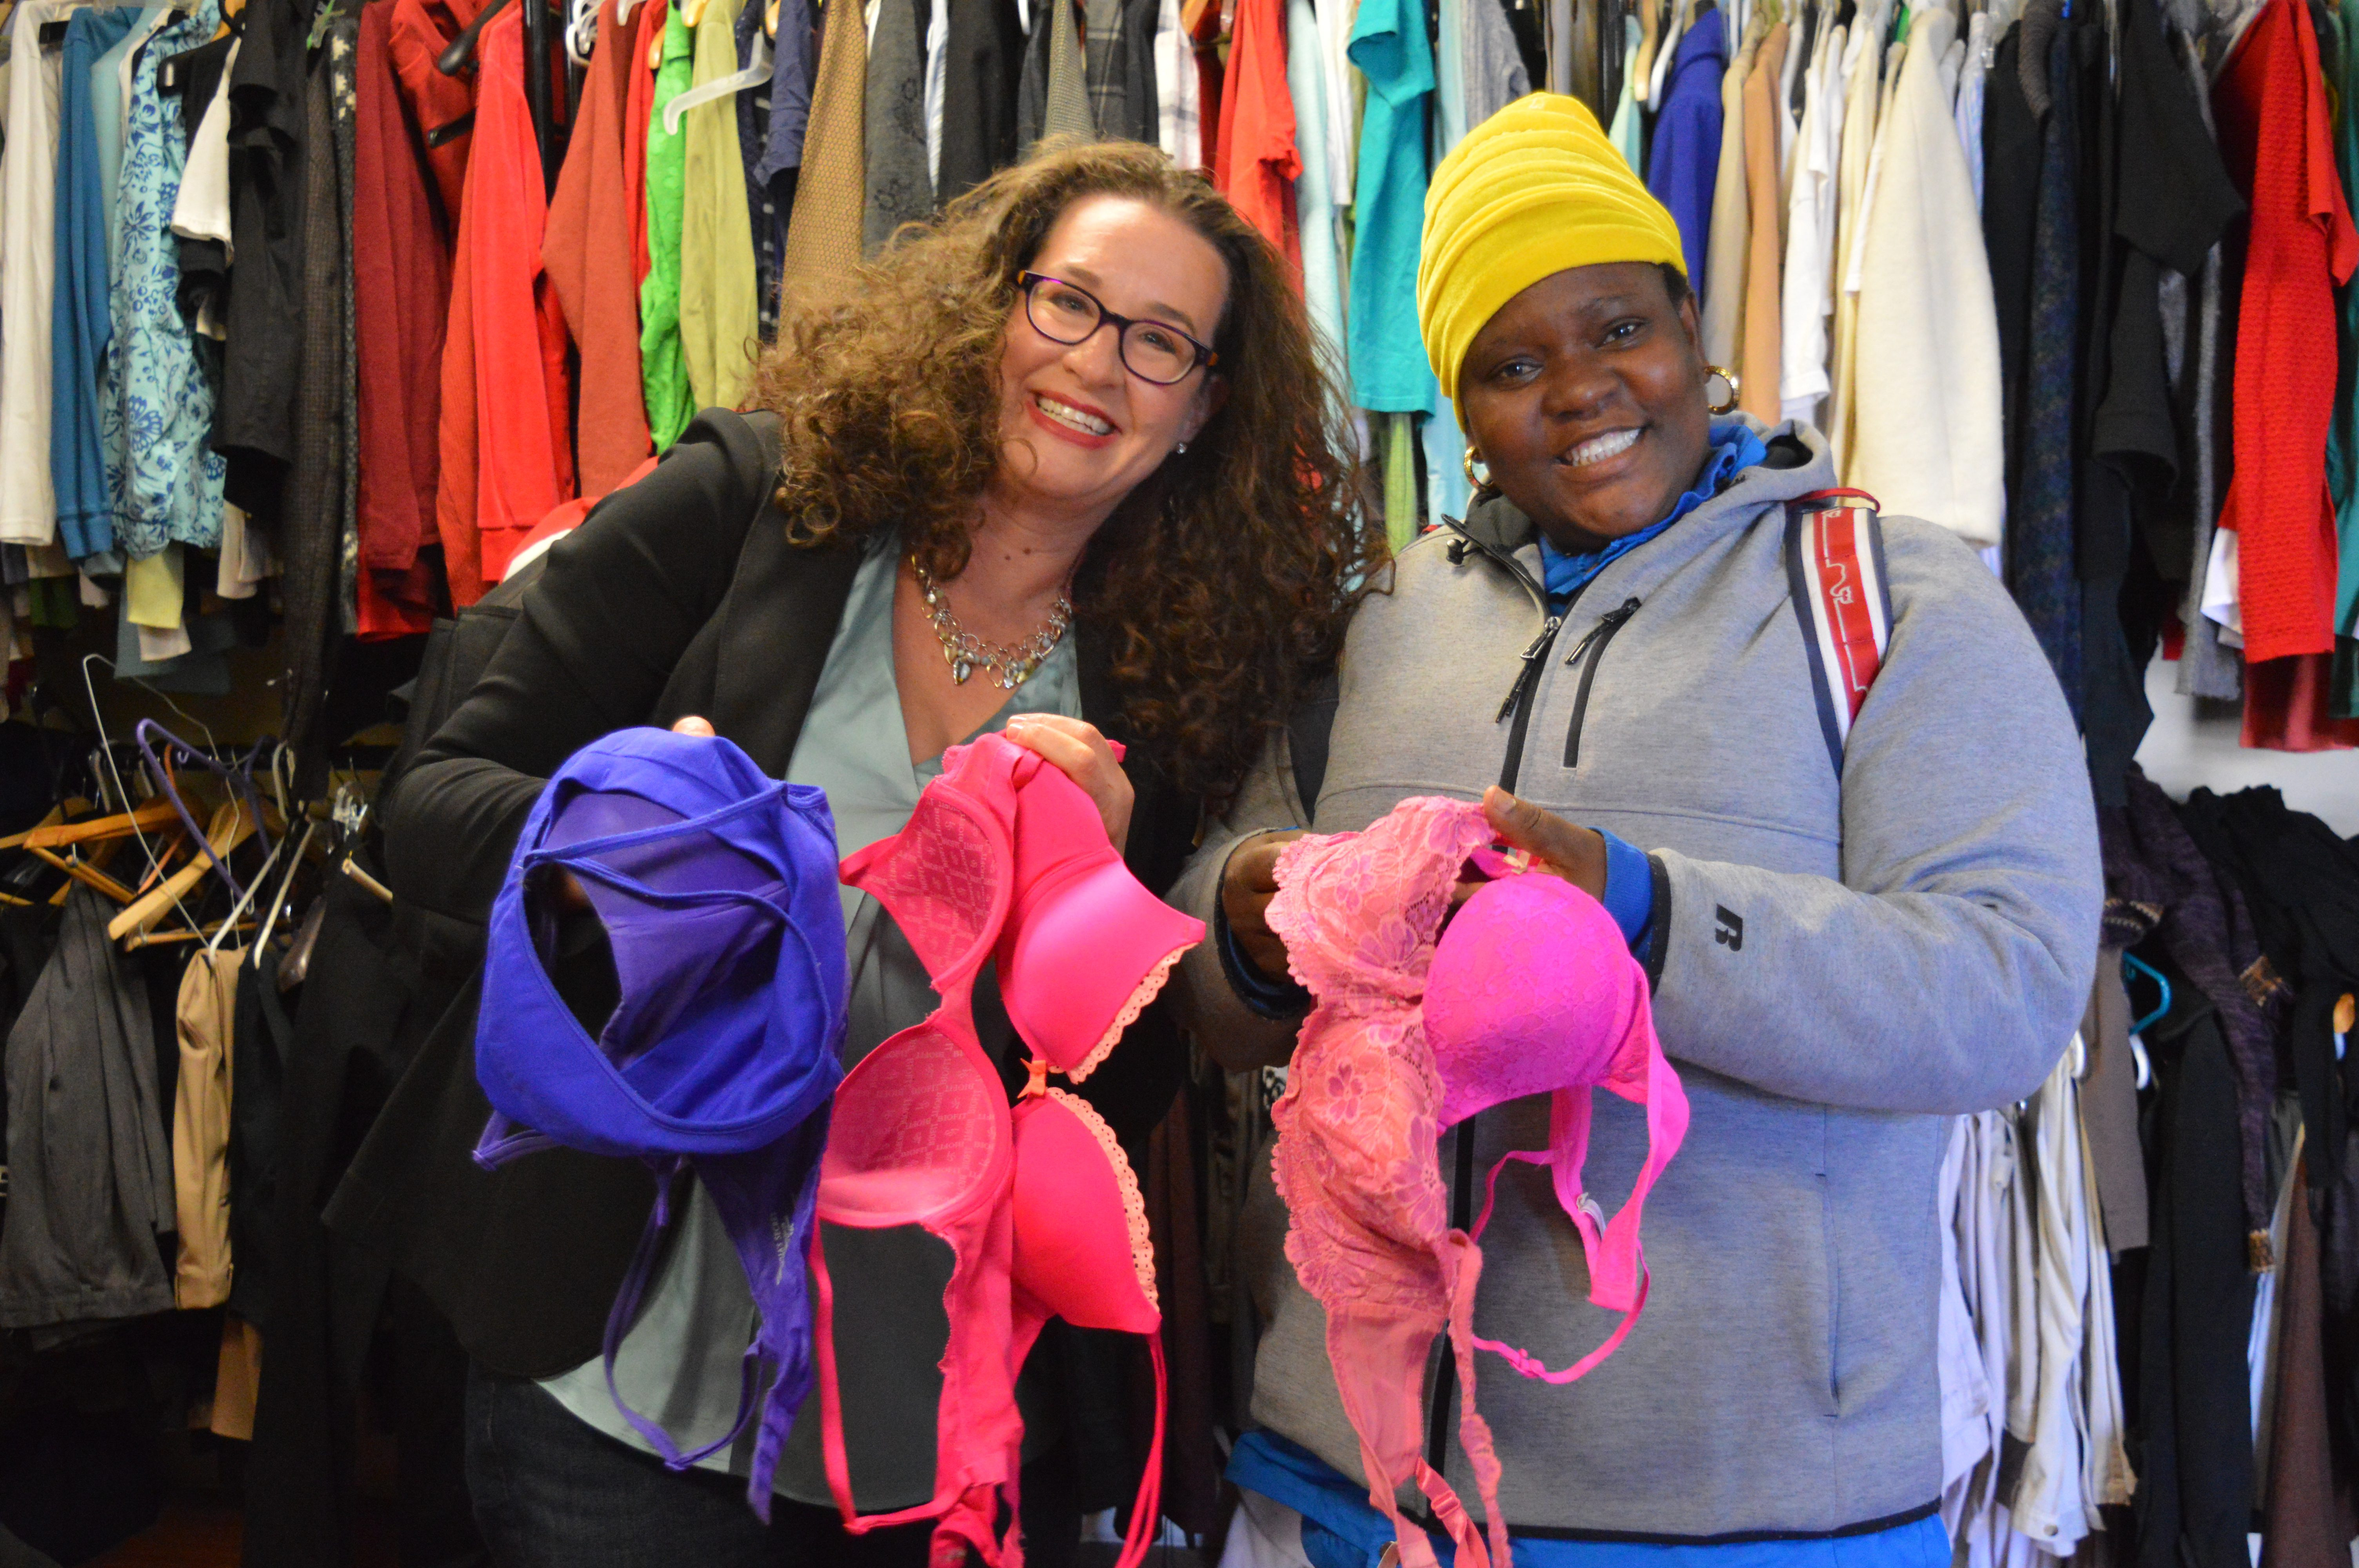 Woman experiencing homelessness in DC receives bras from Dana Marlowe